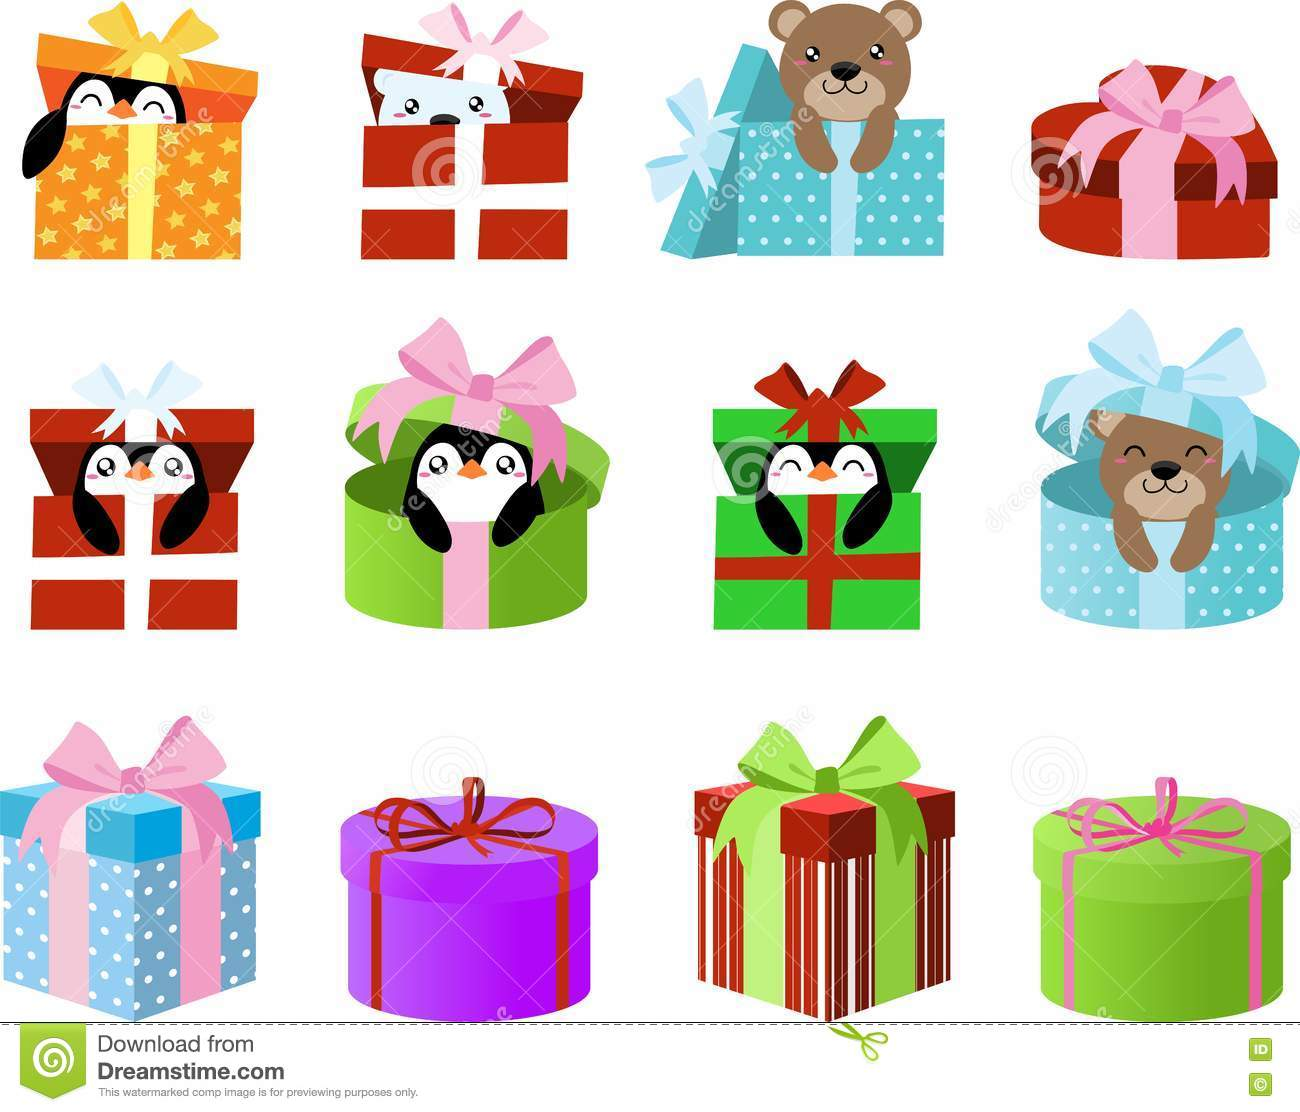 Cute gift boxes clipart with penguins and bears inside clip art for download cute gift boxes clipart with penguins and bears inside clip art for planner stickers negle Image collections